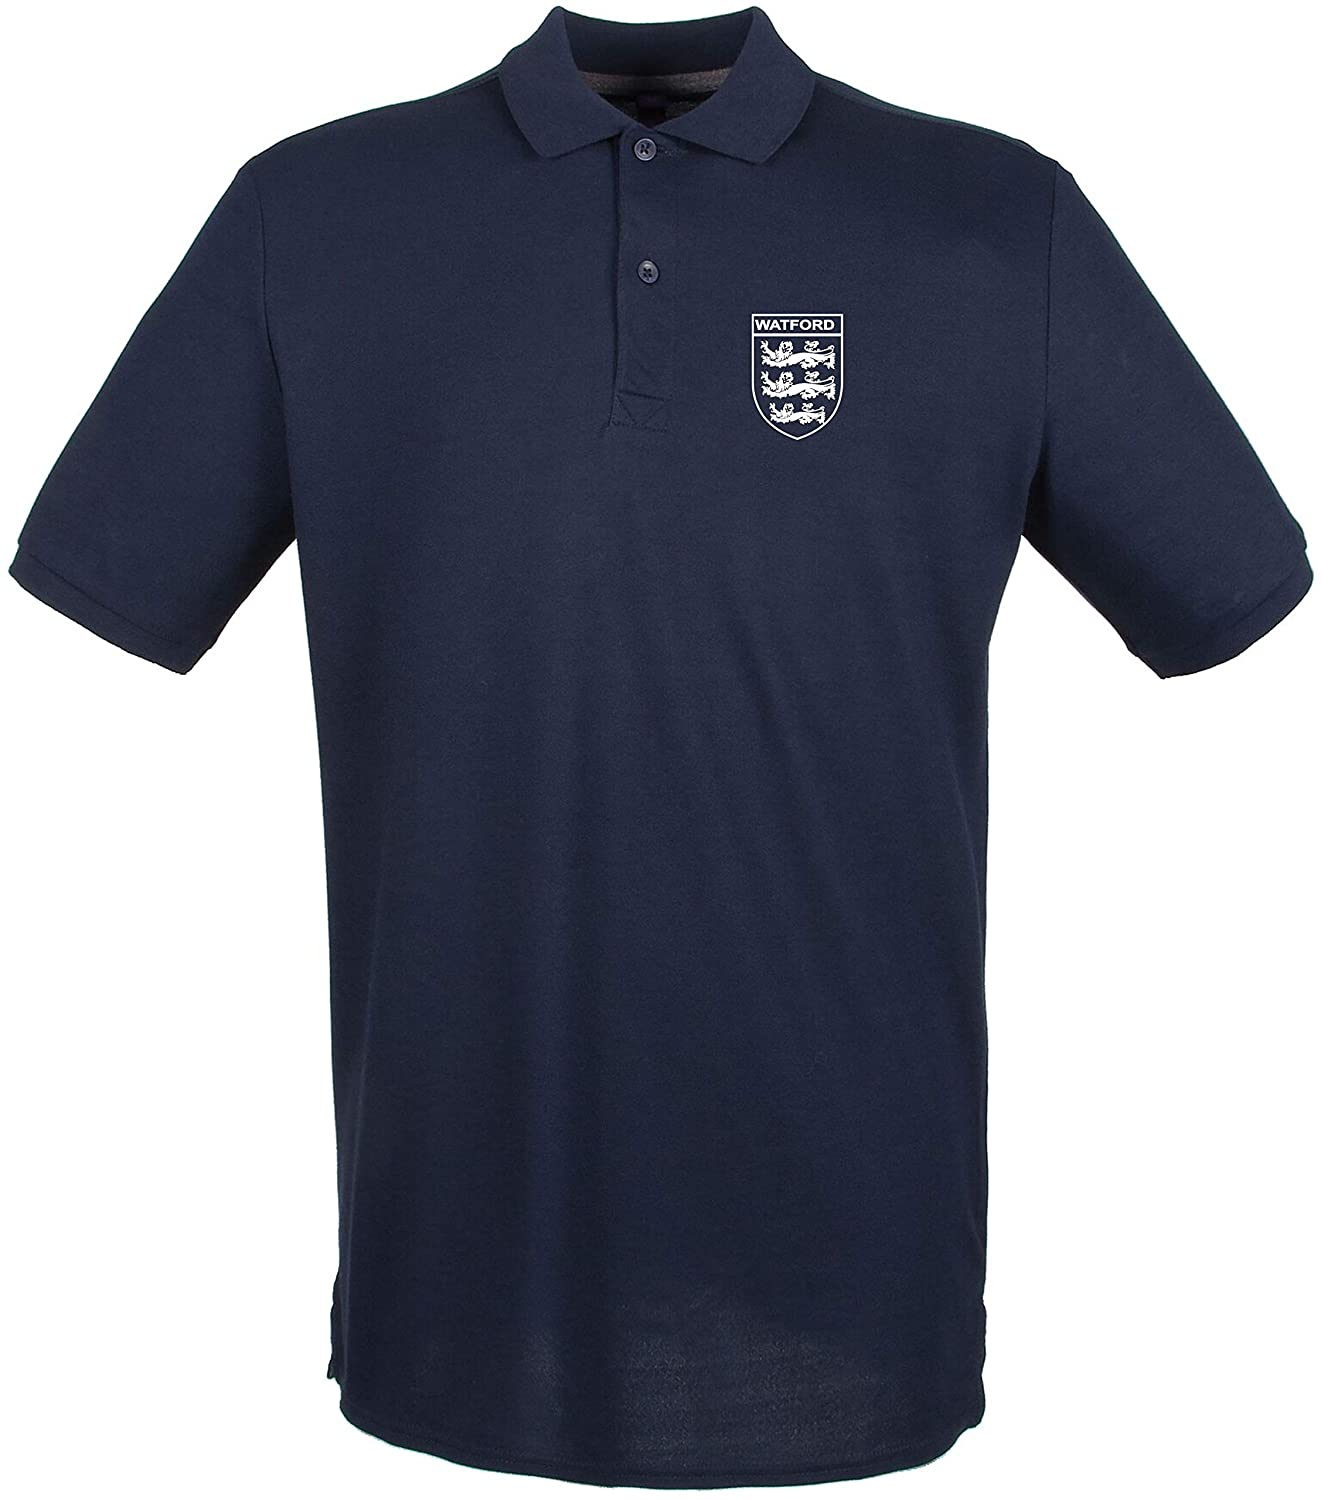 3 Lions Watford Club and Country Polo Small Crest Kids Navy